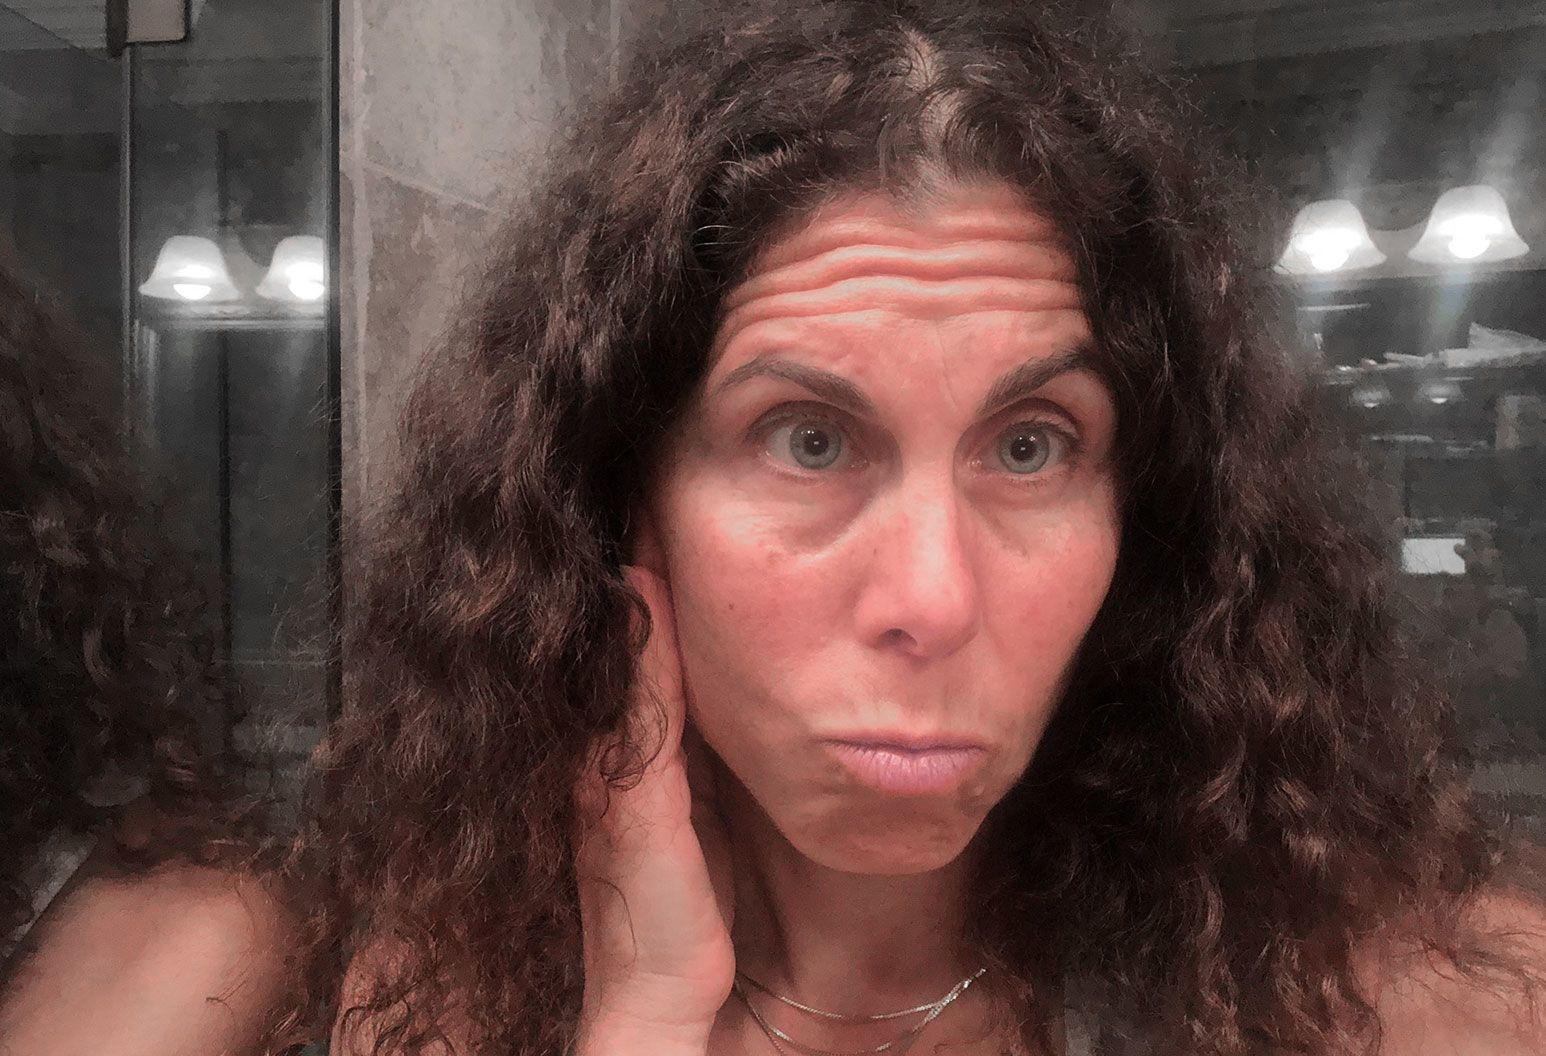 A woman with long dark and curly hair stands in front of a bathroom mirror and looks at her reflection. Her hand is on the side of her face along her jawline.